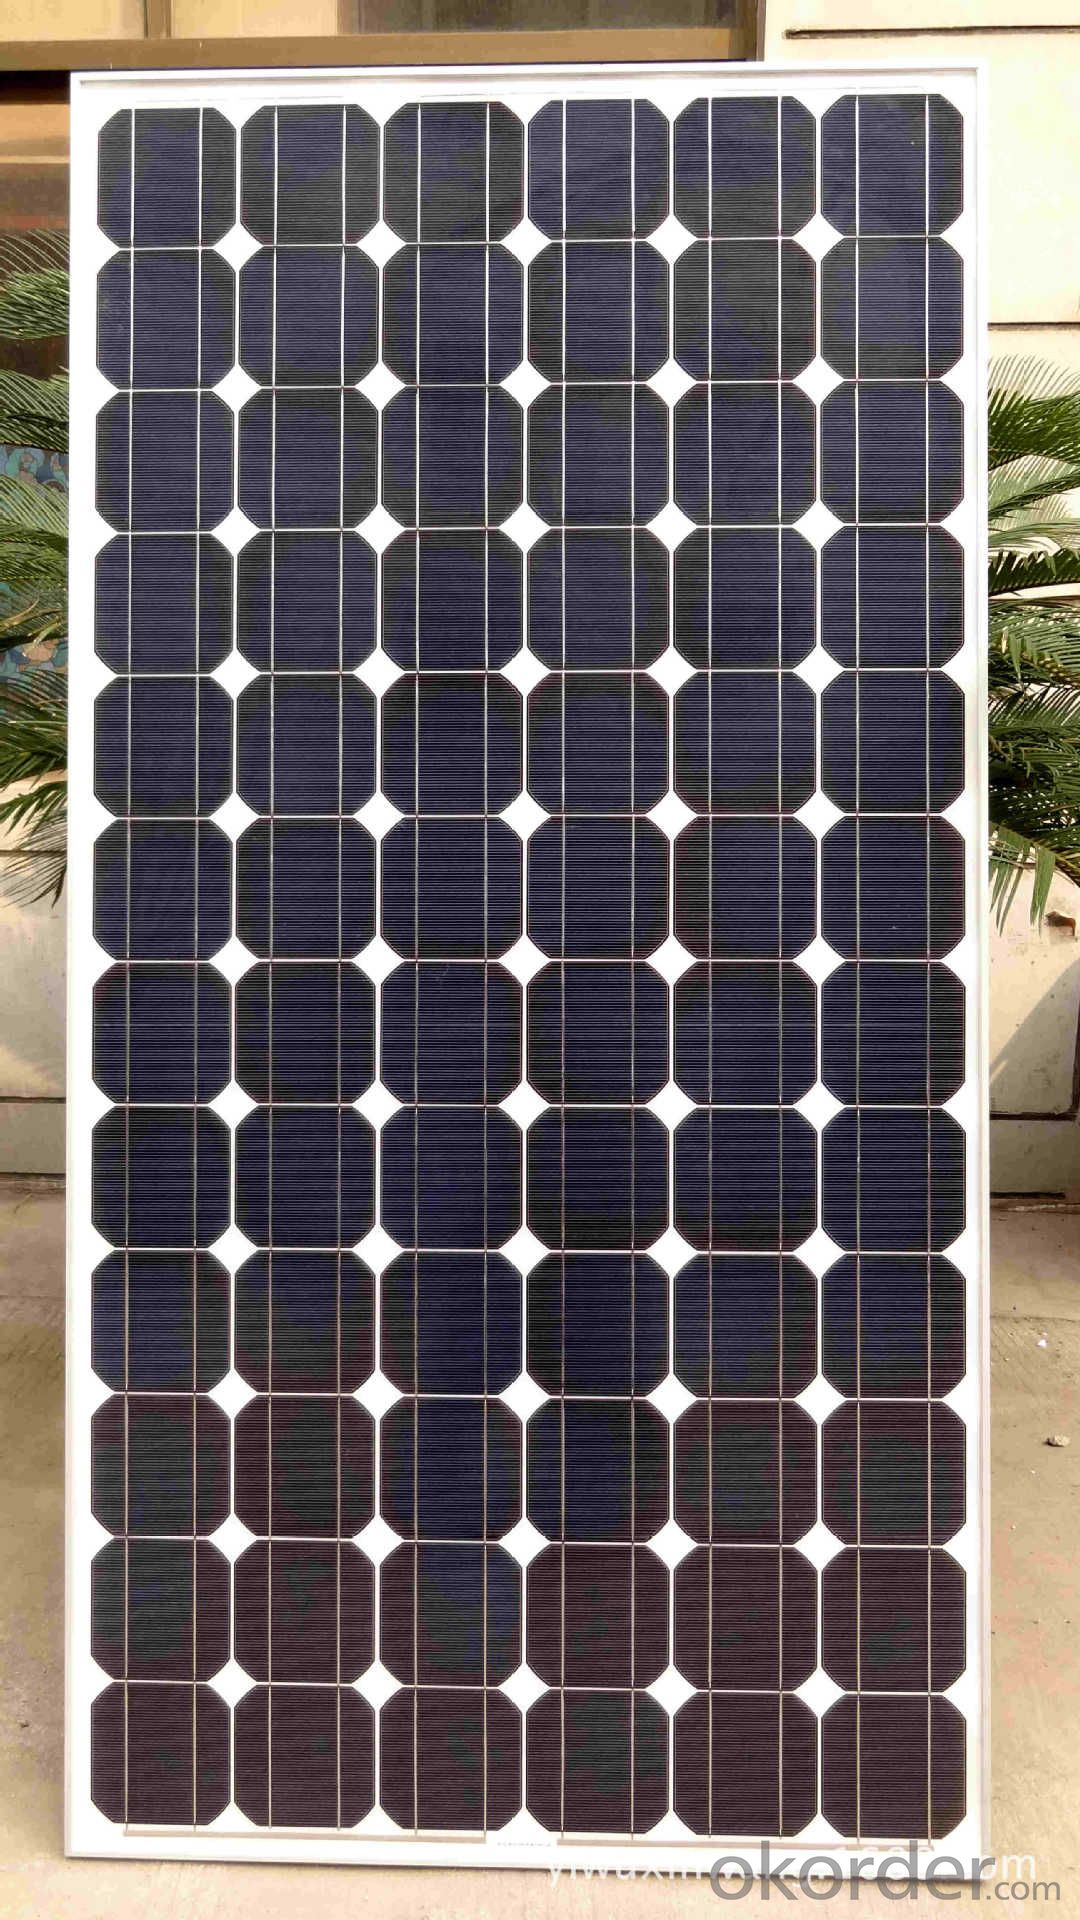 Poly 240w solar panel price A grade PV panels